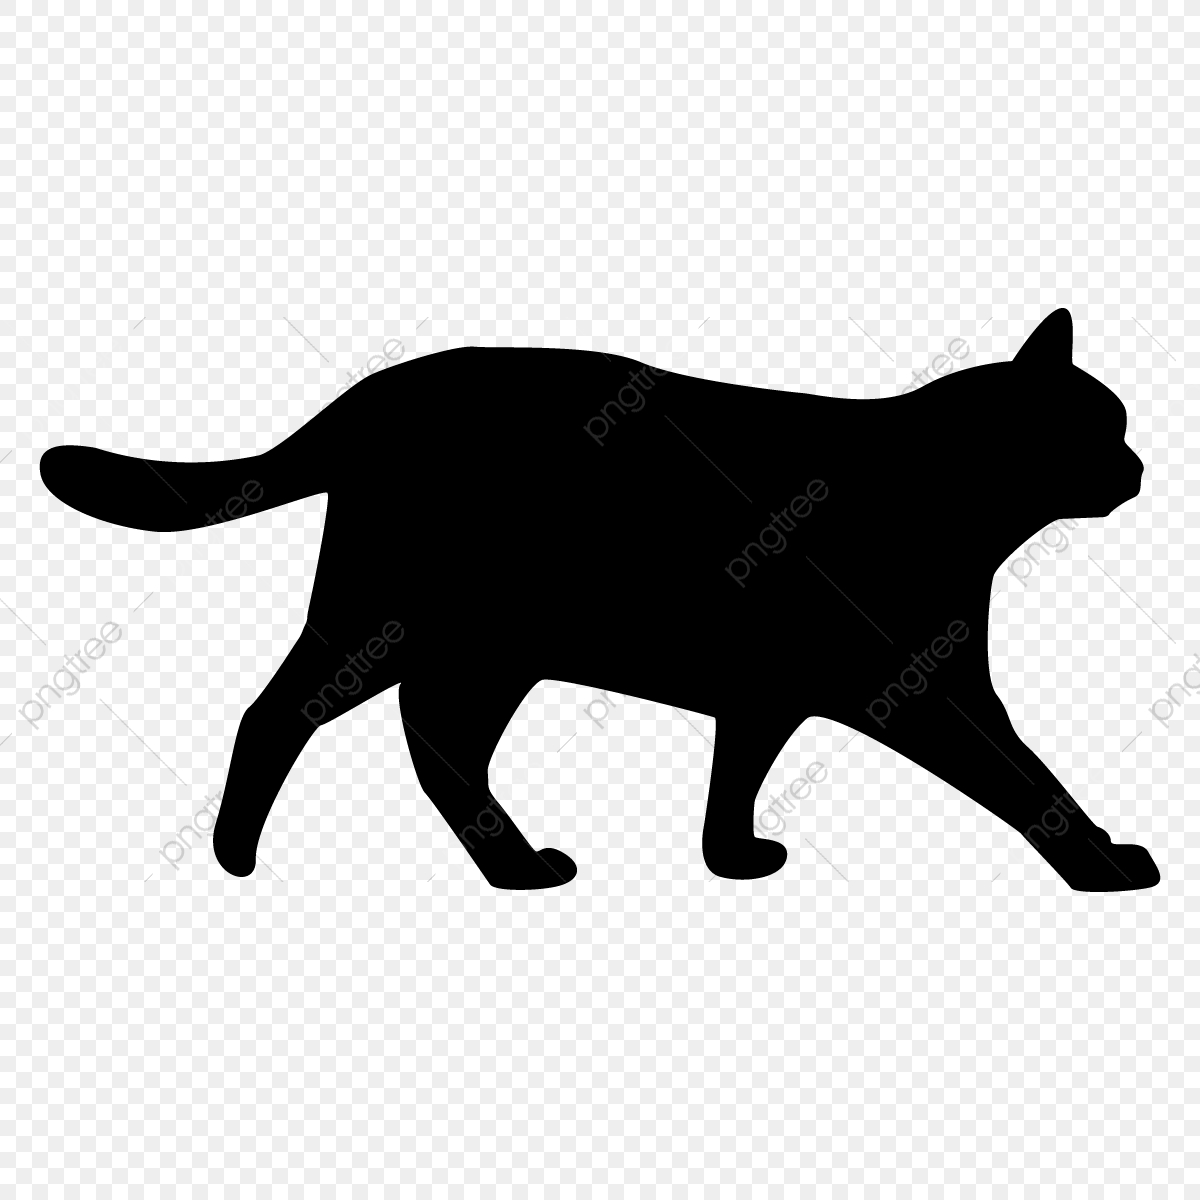 Cat Silhouette Png, Cat, Png, Cat Silhouette PNG and Vector with.